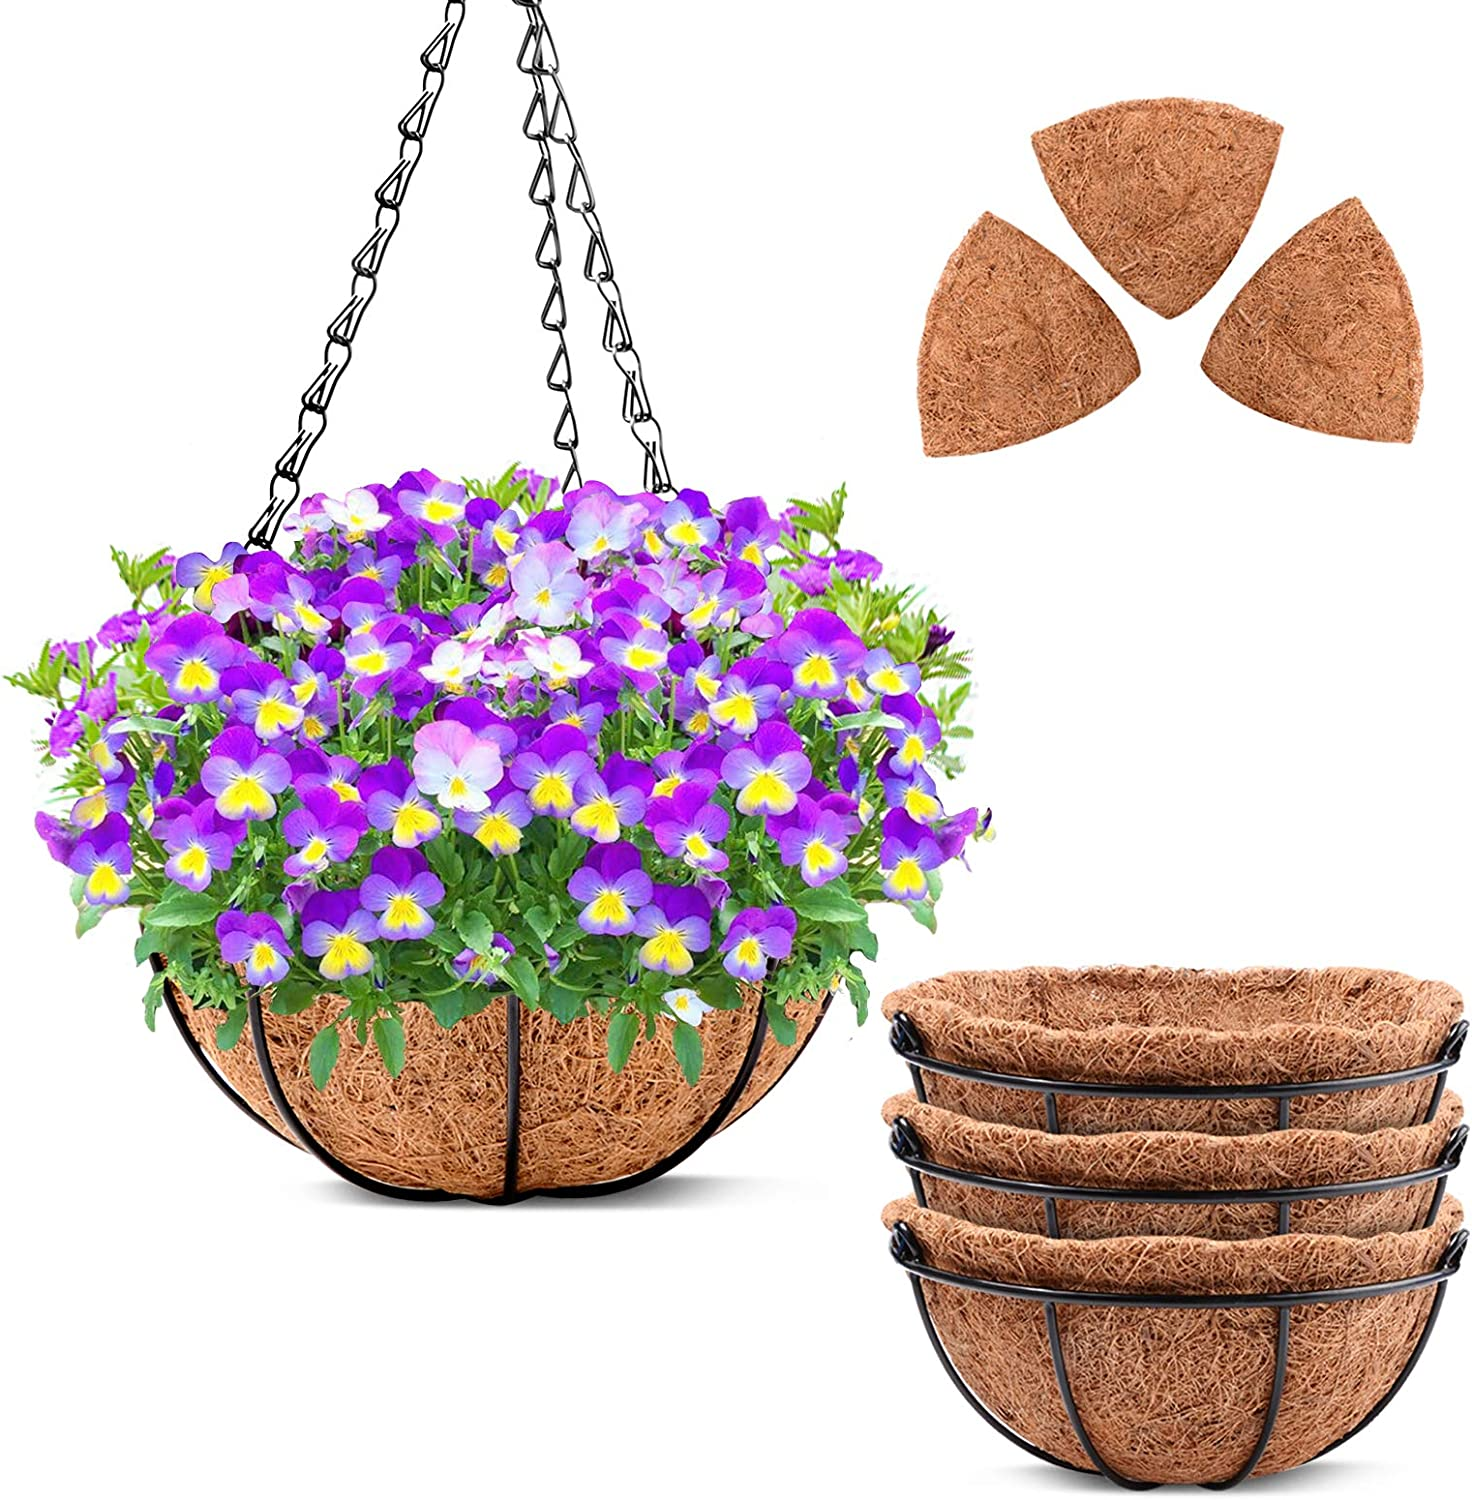 Metal Hanging Planter Baskets with Coco Coir Liner 10 Inch, 4 Pack Plant Holders and Flower Pots with Wire Chain for Outdoor Porch, Watering Hanging Baskets for Balcony Garden Decoration